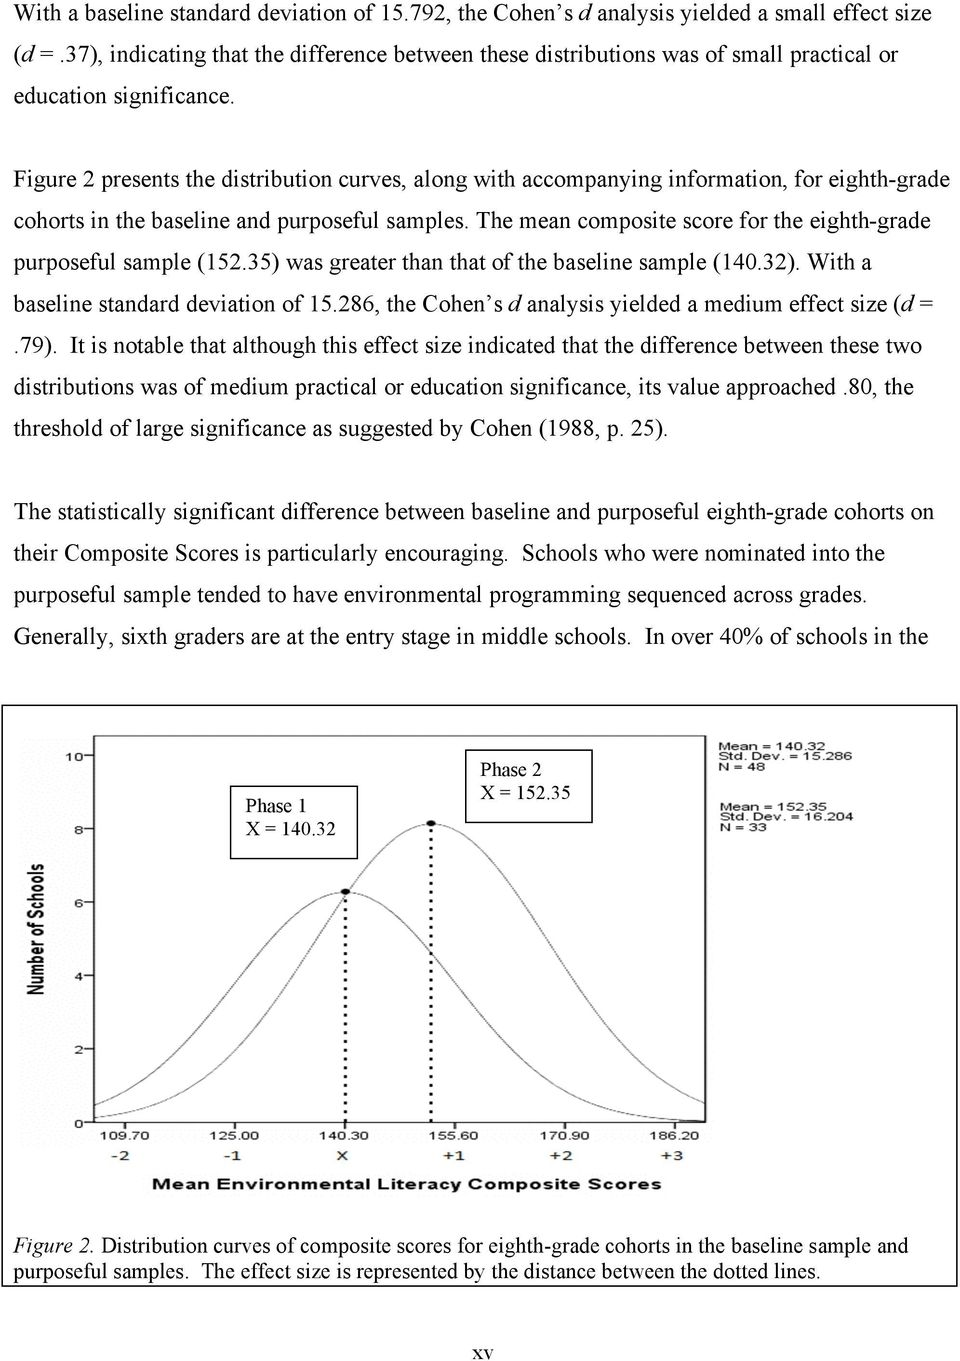 Figure 2 presents the distribution curves, along with accompanying information, for eighth-grade cohorts in the baseline and purposeful samples.